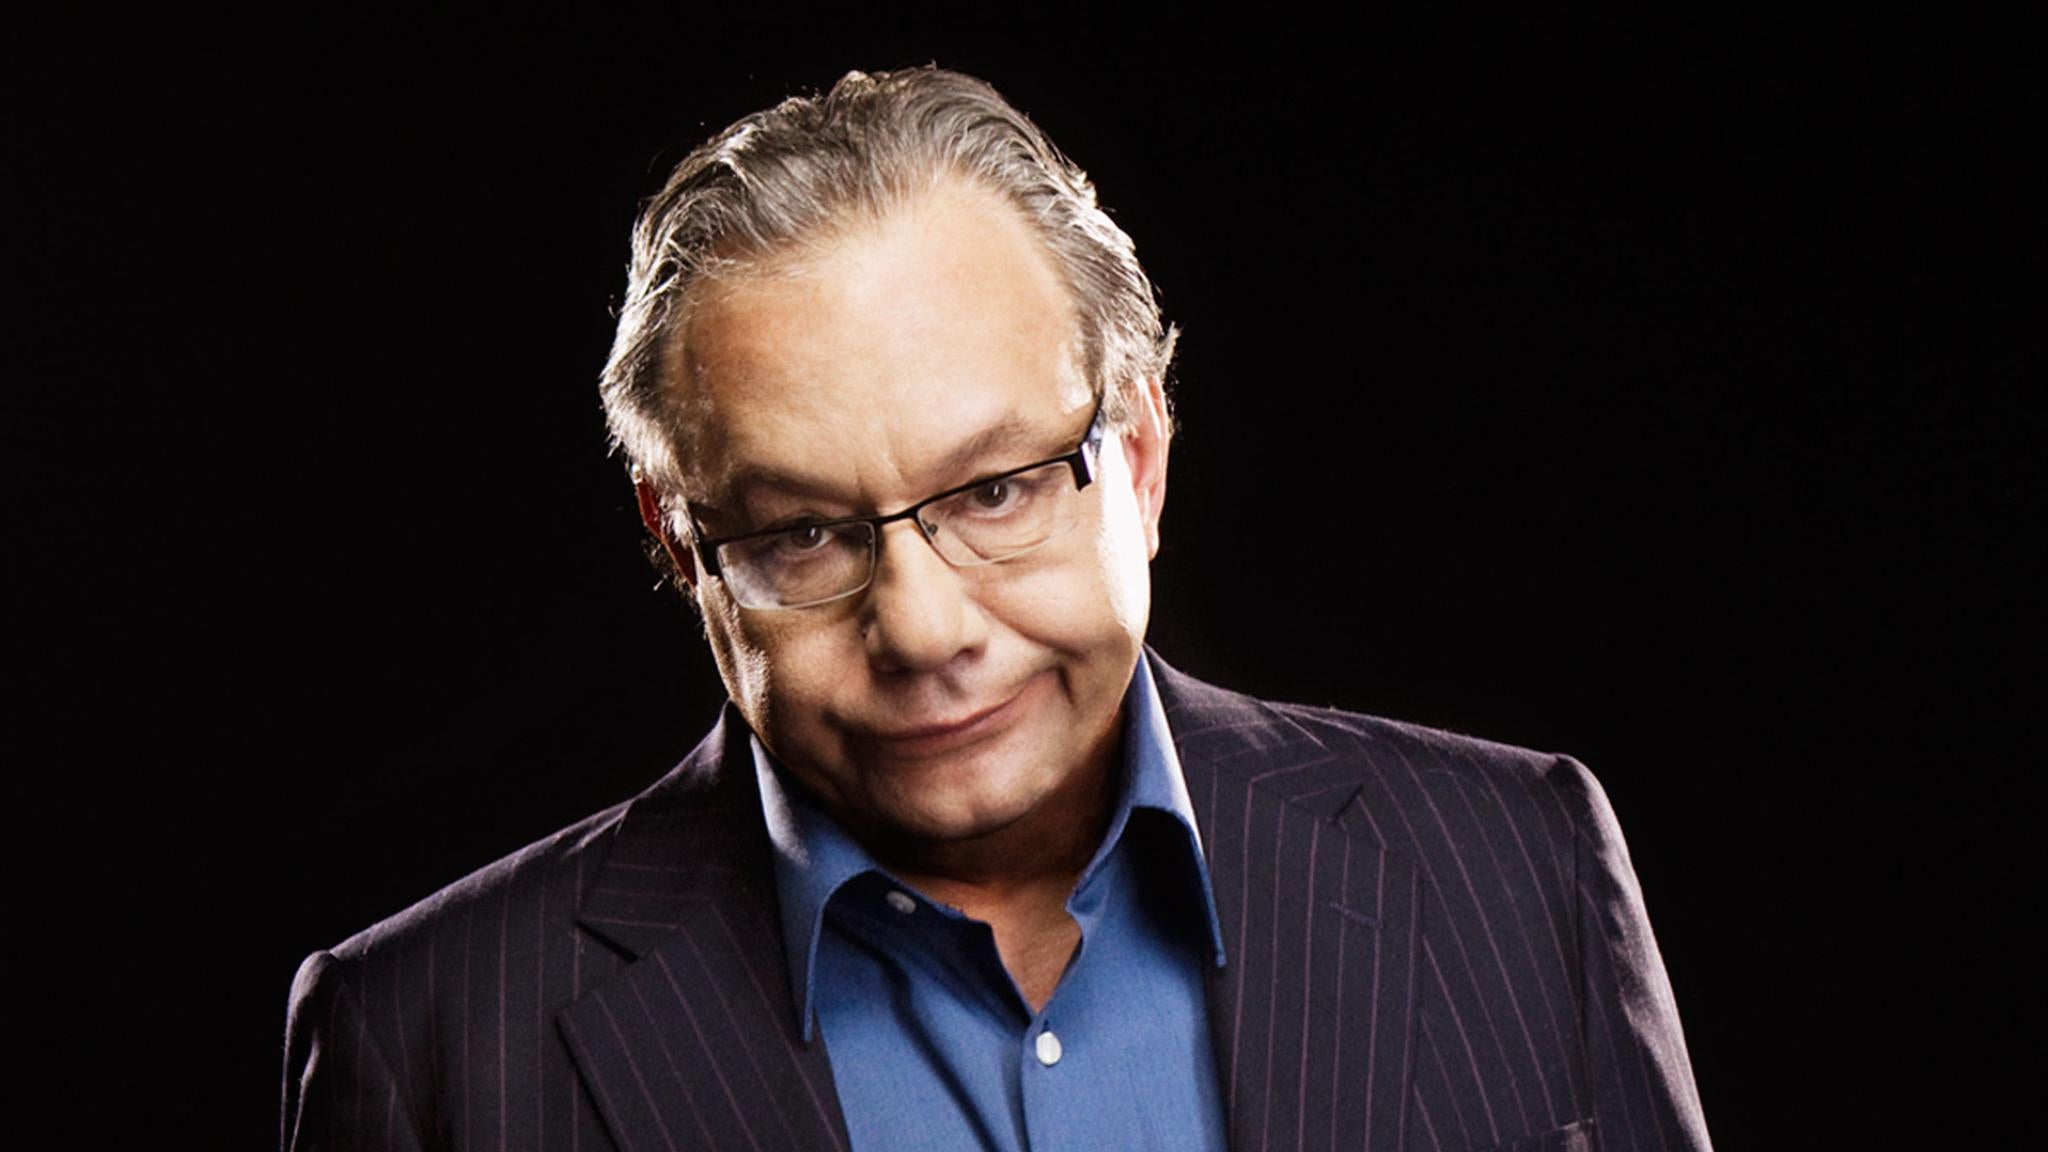 Lewis Black at The Peabody Daytona Beach